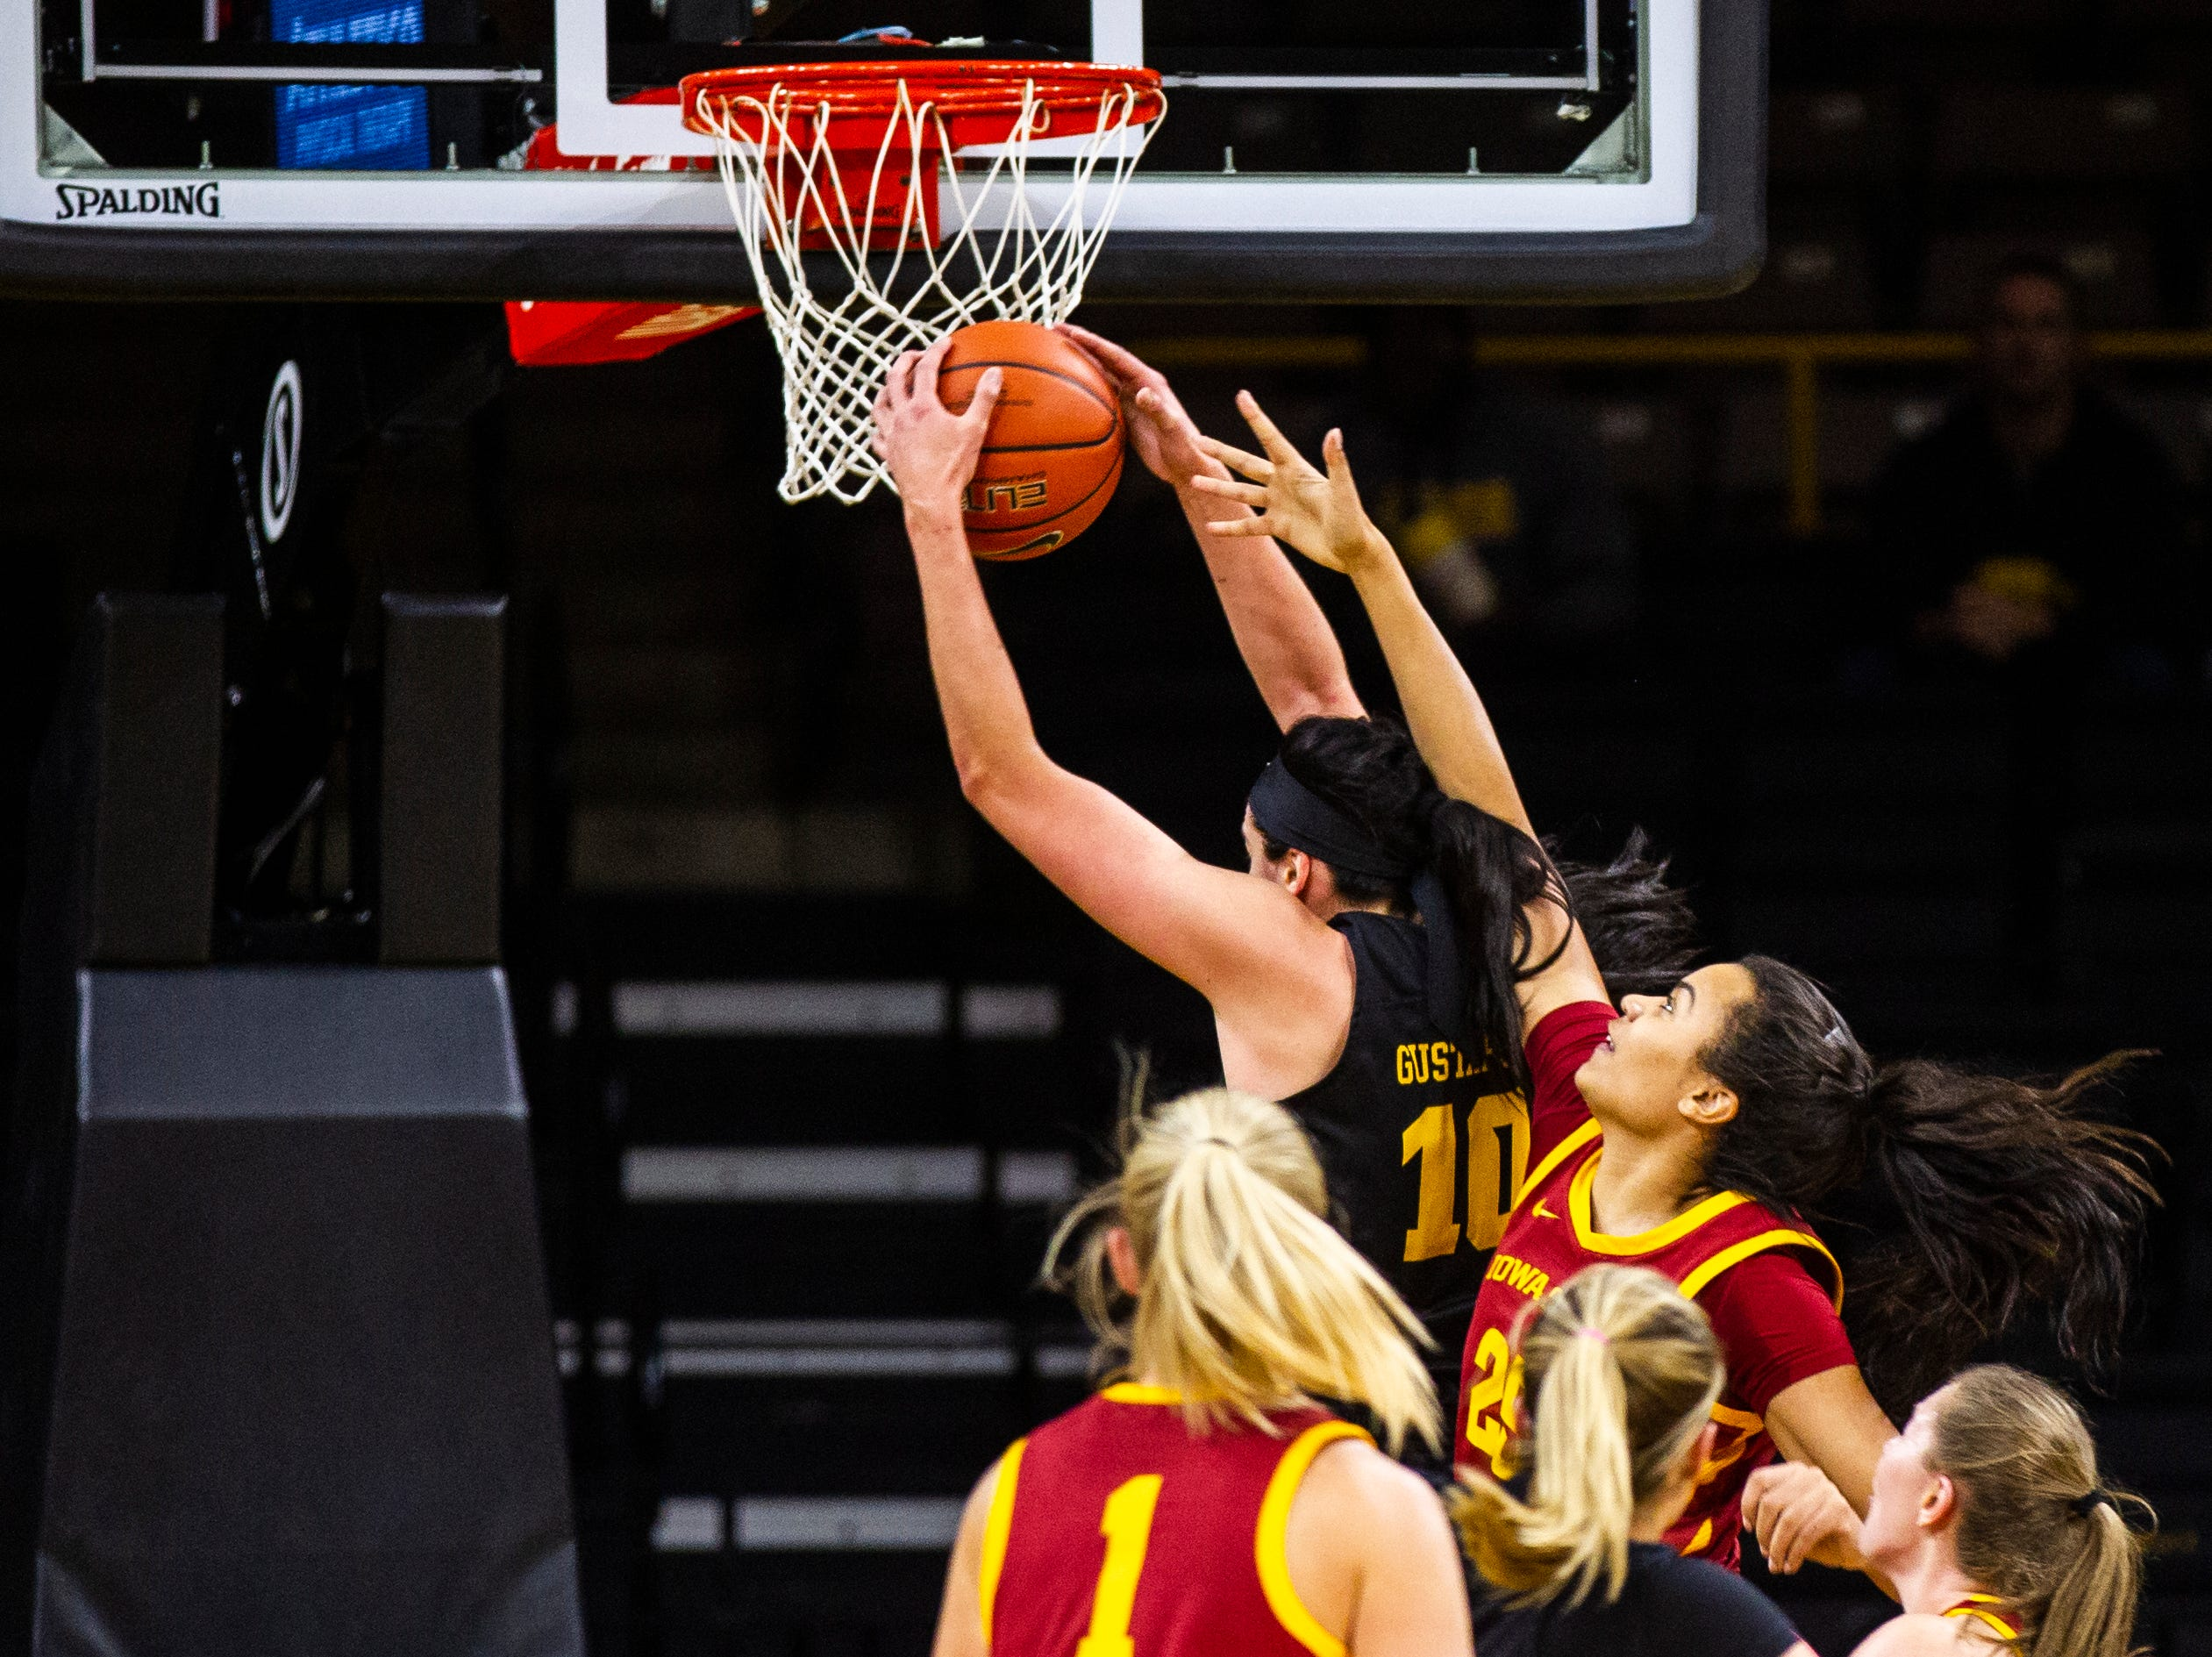 Iowa forward Megan Gustafson (10) grabs a rebound to break the school record during a Cy-Hawk series NCAA women's basketball game on Wednesday, Dec. 5, 2018, at Carver-Hawkeye Arena in Iowa City.